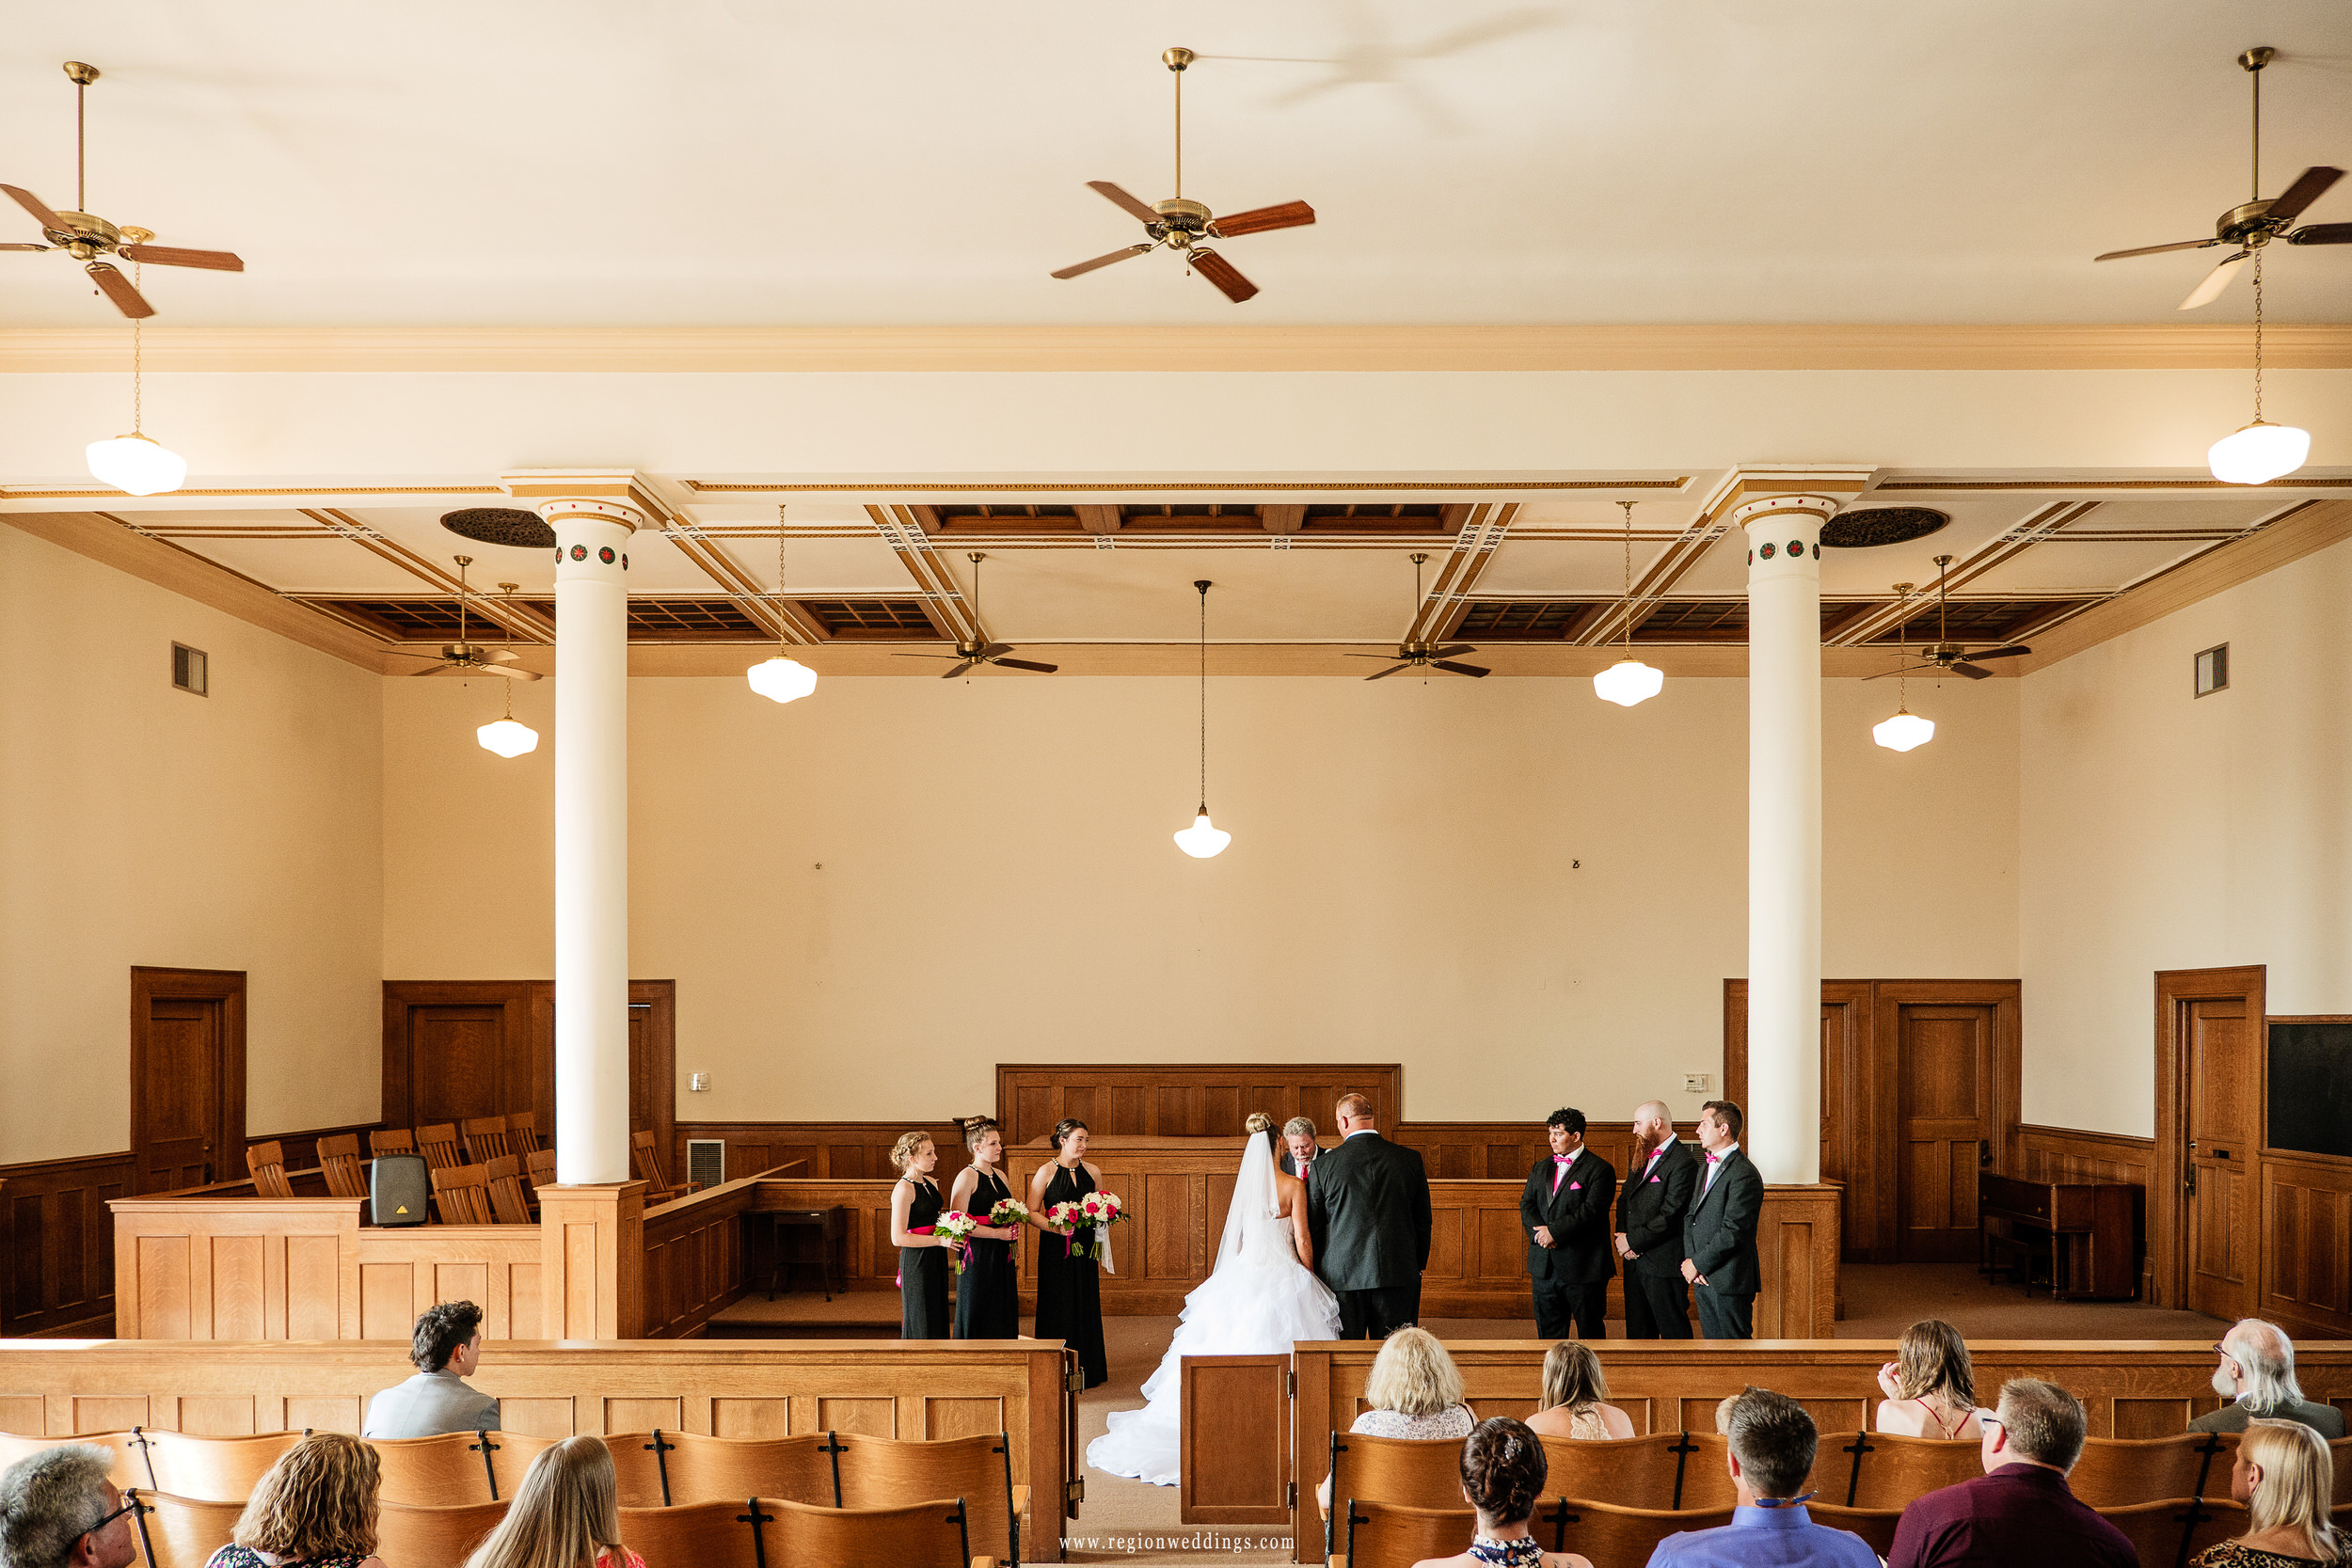 Wedding ceremony in the 1920's era courtroom in the historic Lake County Courthouse building.